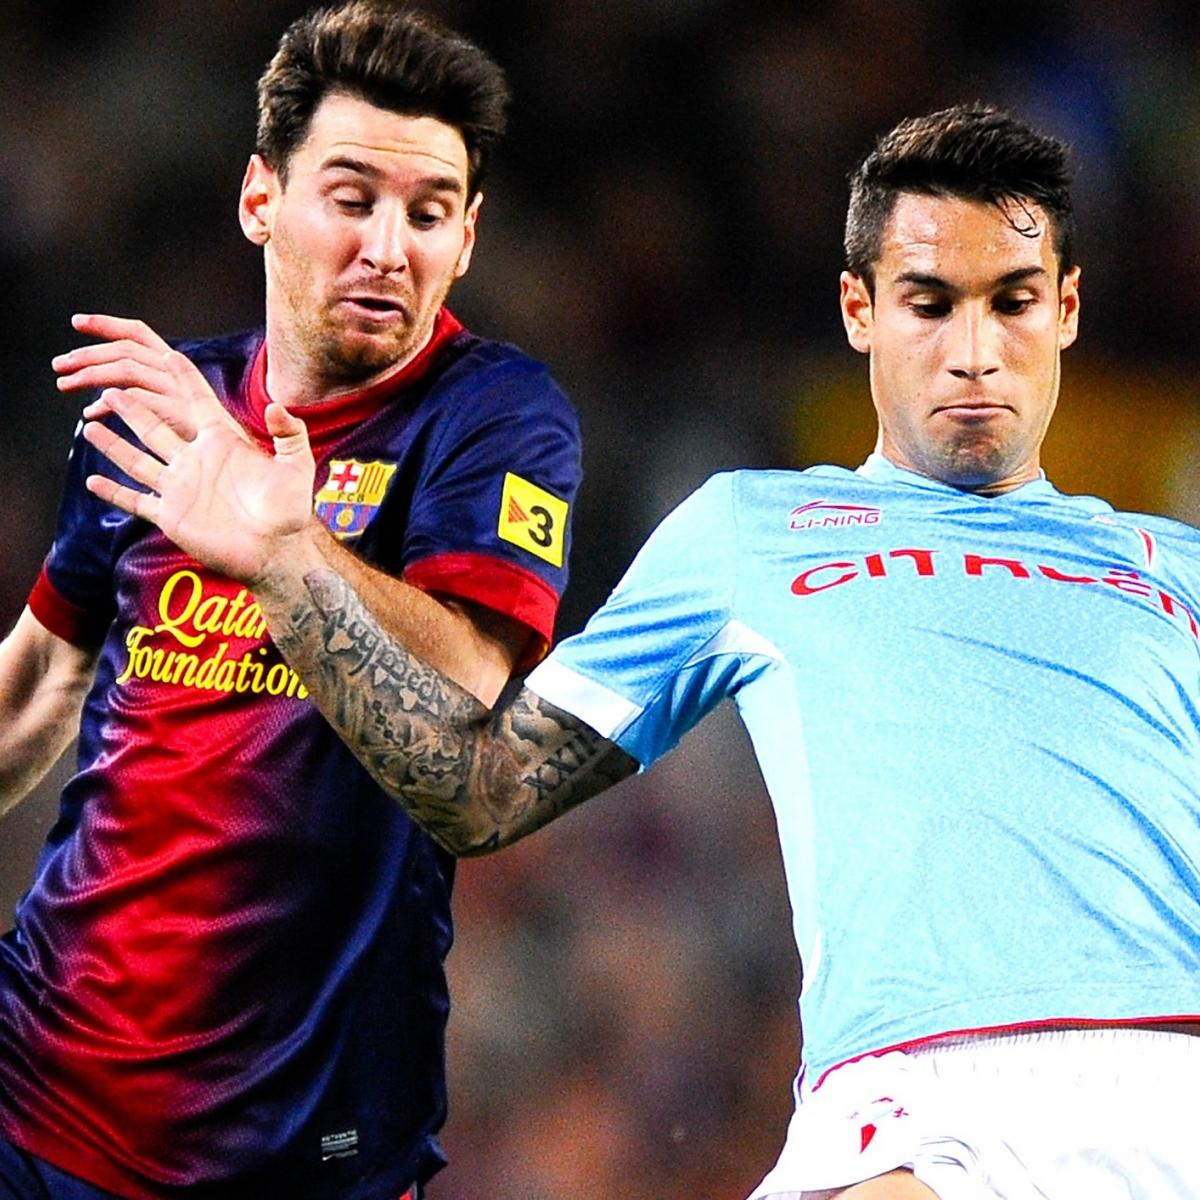 Celta Vigo Vs. Barcelona: La Liga Live Score, Highlights